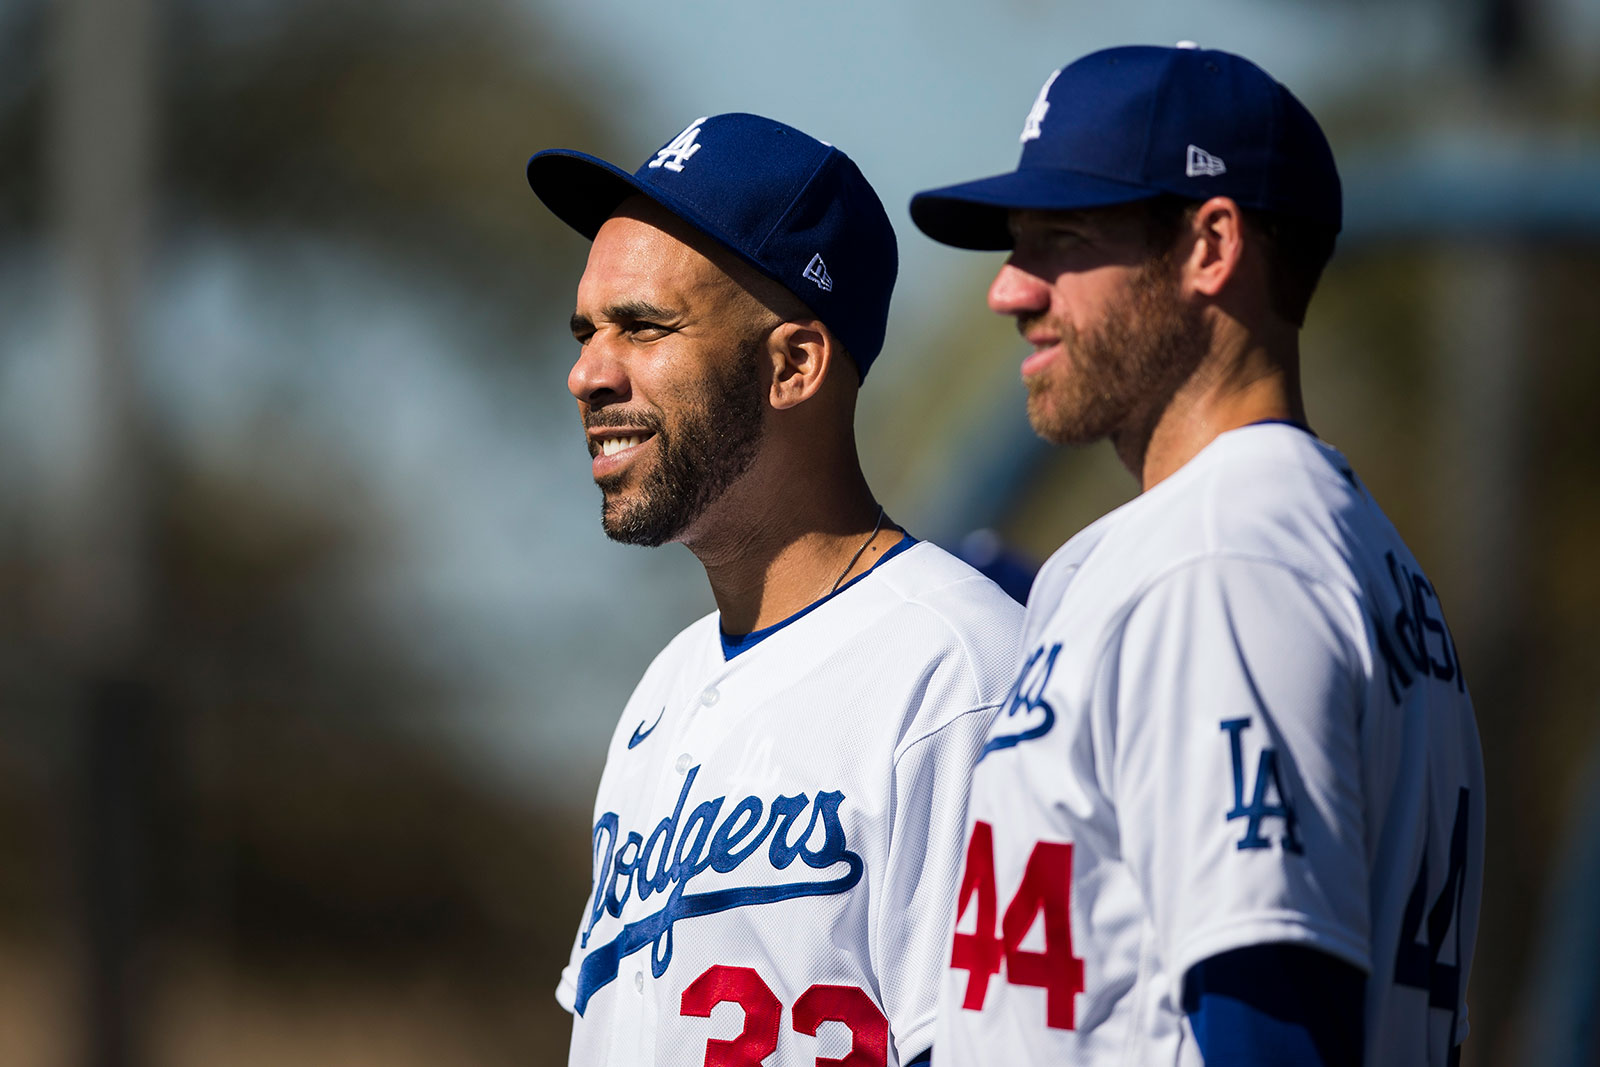 Dodgers pitcher David Price, left, looks on during a spring training workout in Glendale, Arizona, on February 20. Price announced on Twitter that he will not play in the 2020 MLB season.